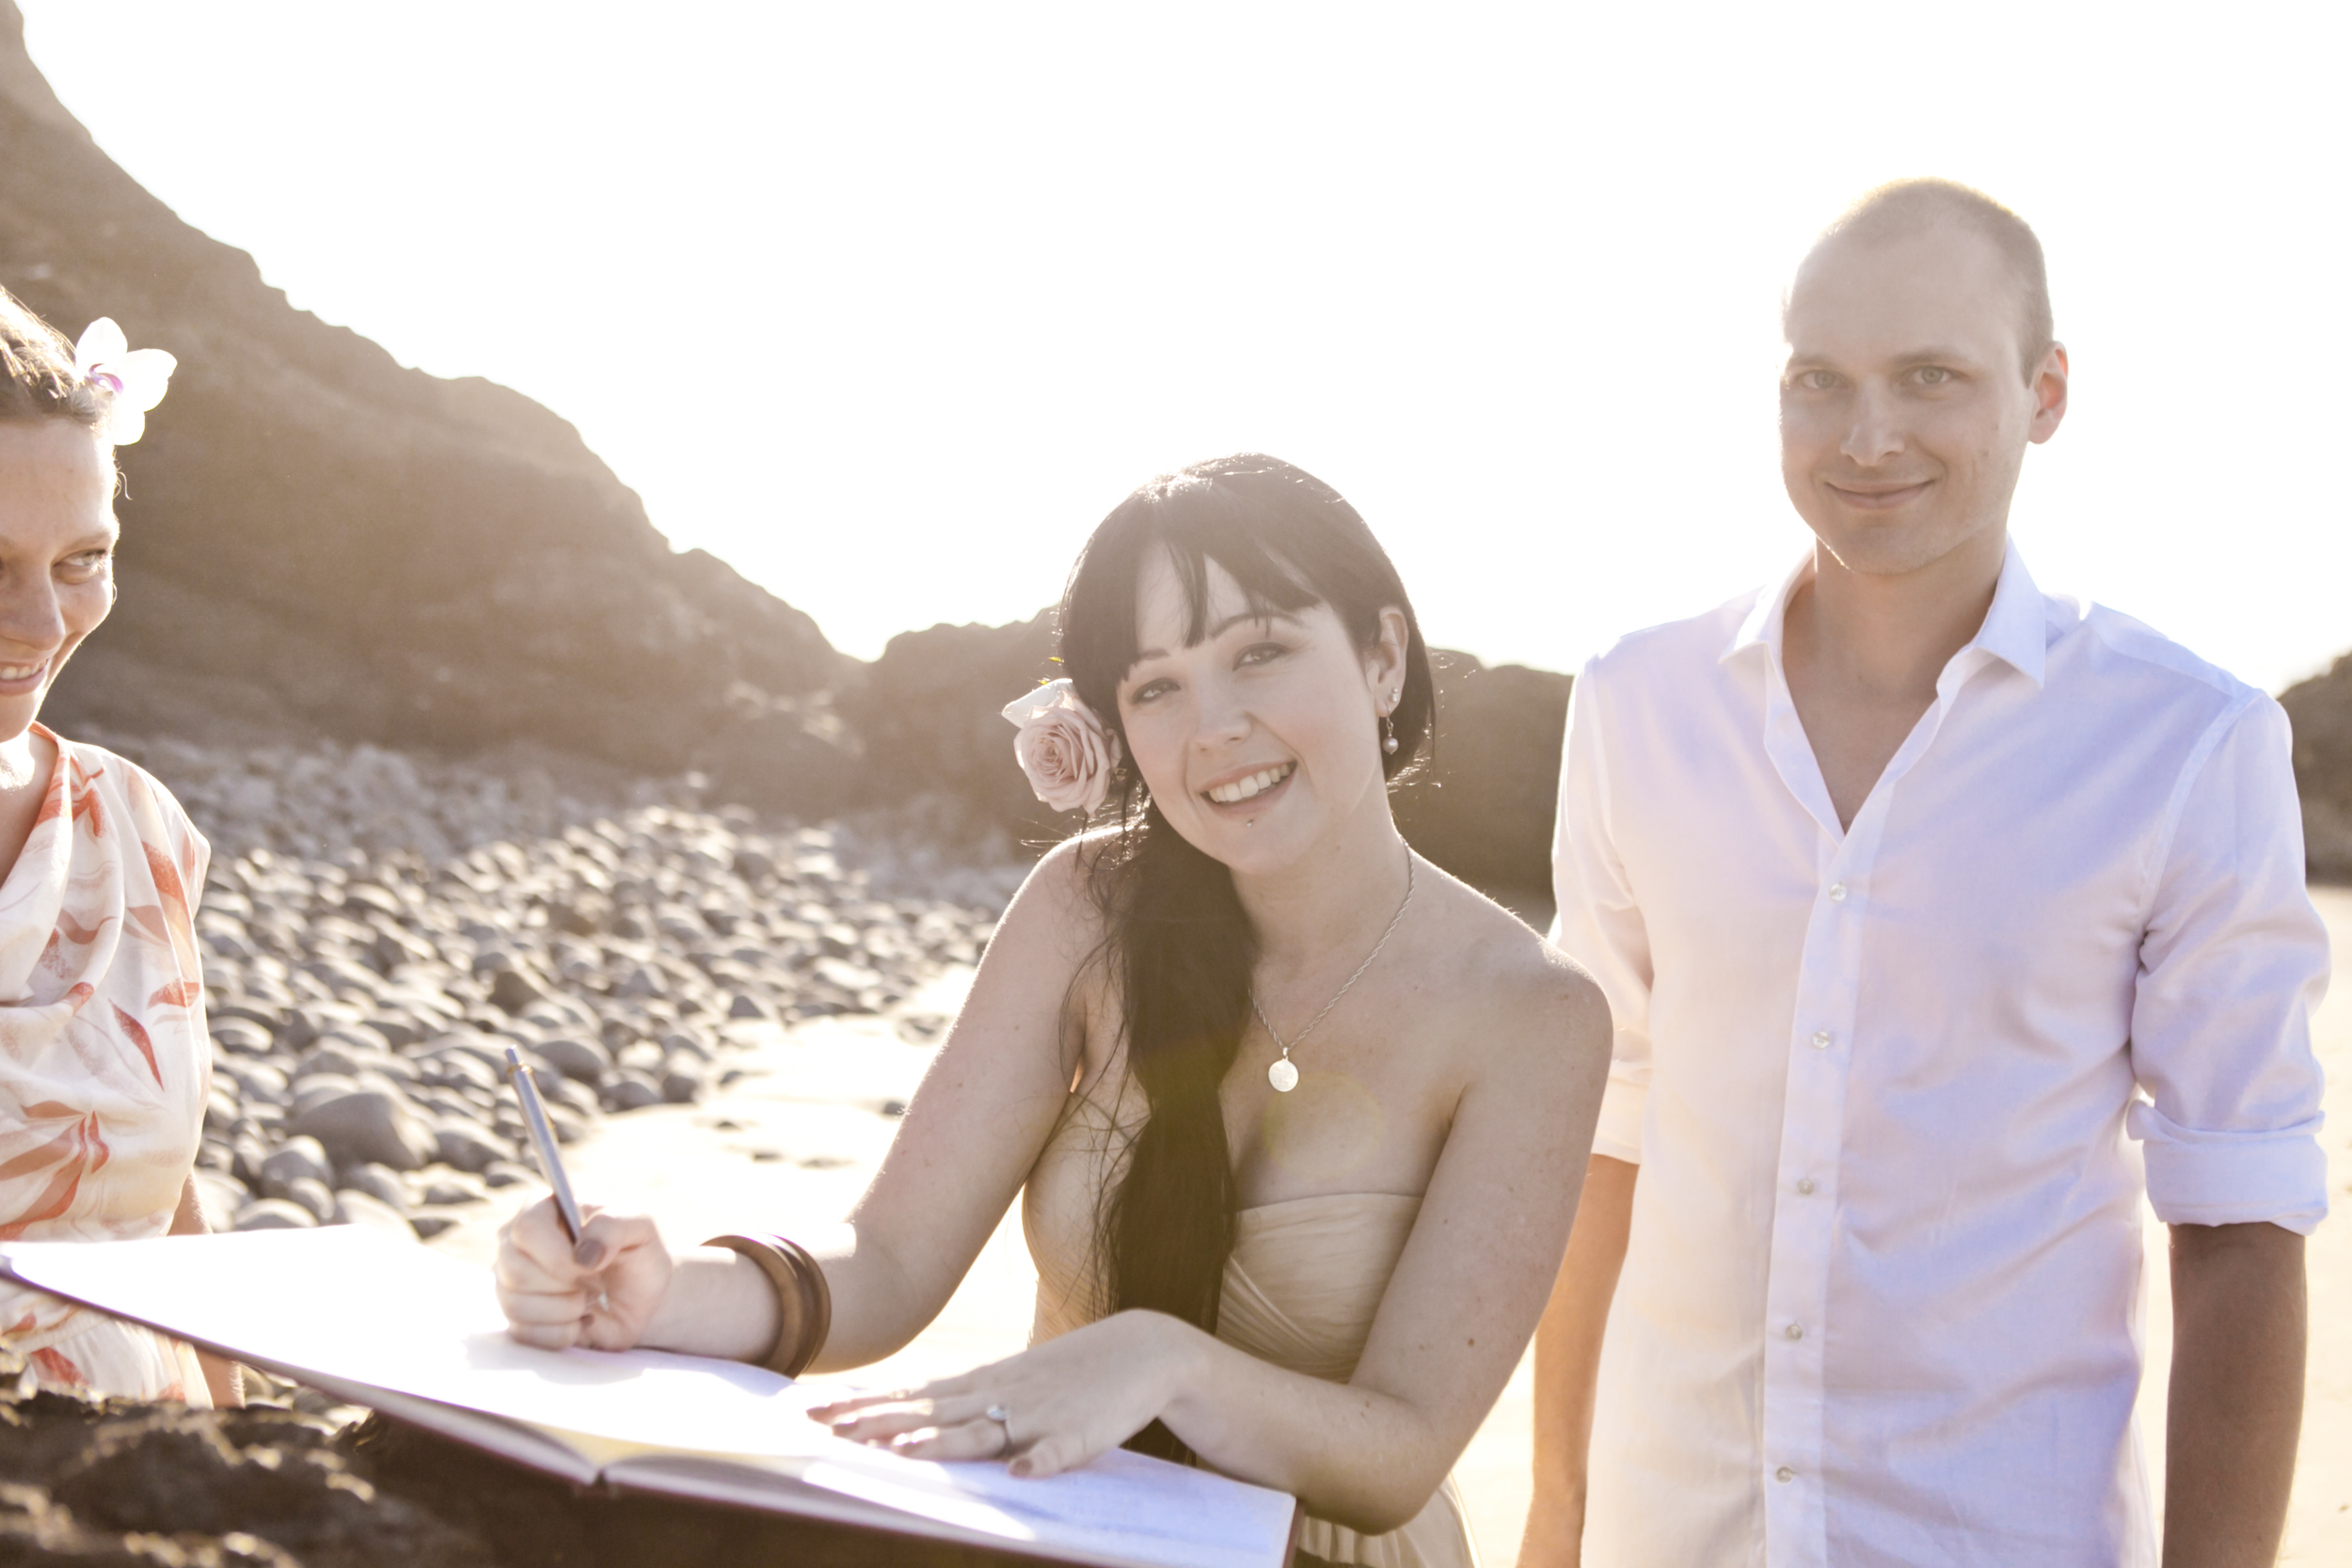 Amy and Harvey eloped at Little Wategos and signed on a rock. Photo from  Donatella Parisini.